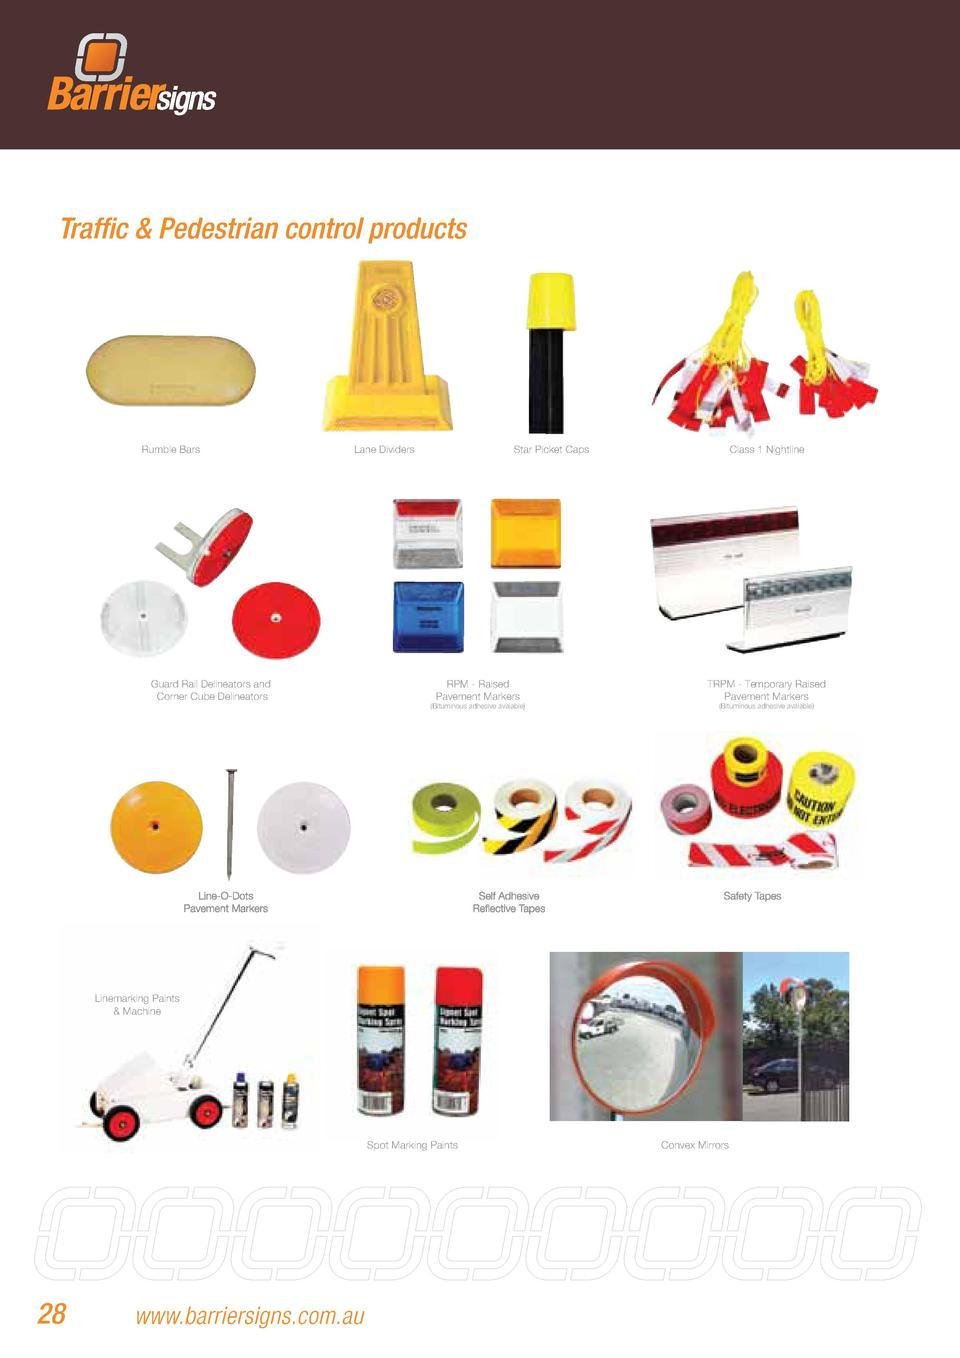 Traffic   Pedestrian control products  Rumble Bars  Lane Dividers  Guard Rail Delineators and Corner Cube Delineators  Sta...